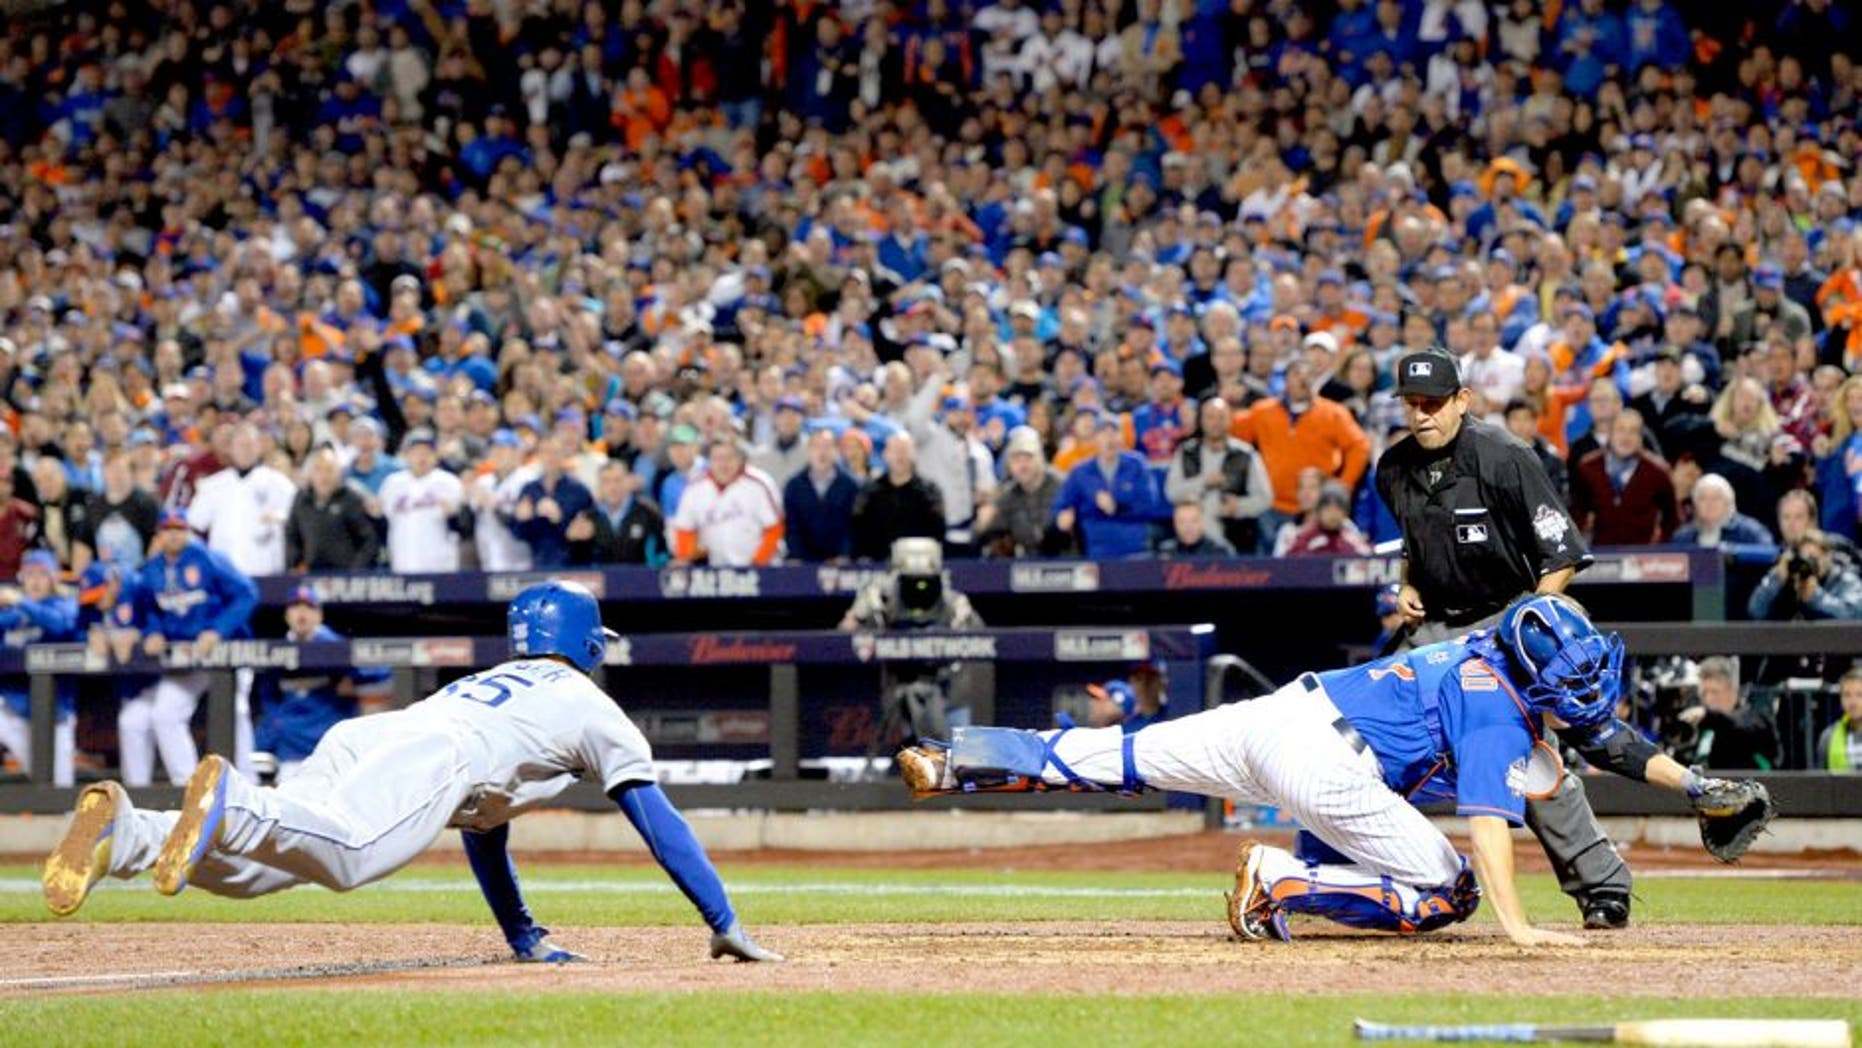 Nov 1, 2015; New York City, NY, USA; Kansas City Royals first baseman Eric Hosmer (35) scores the tying run past New York Mets catcher Travis d'Arnaud (7) in the 9th inning in game five of the World Series at Citi Field. Mandatory Credit: Robert Deutsch-USA TODAY Sports